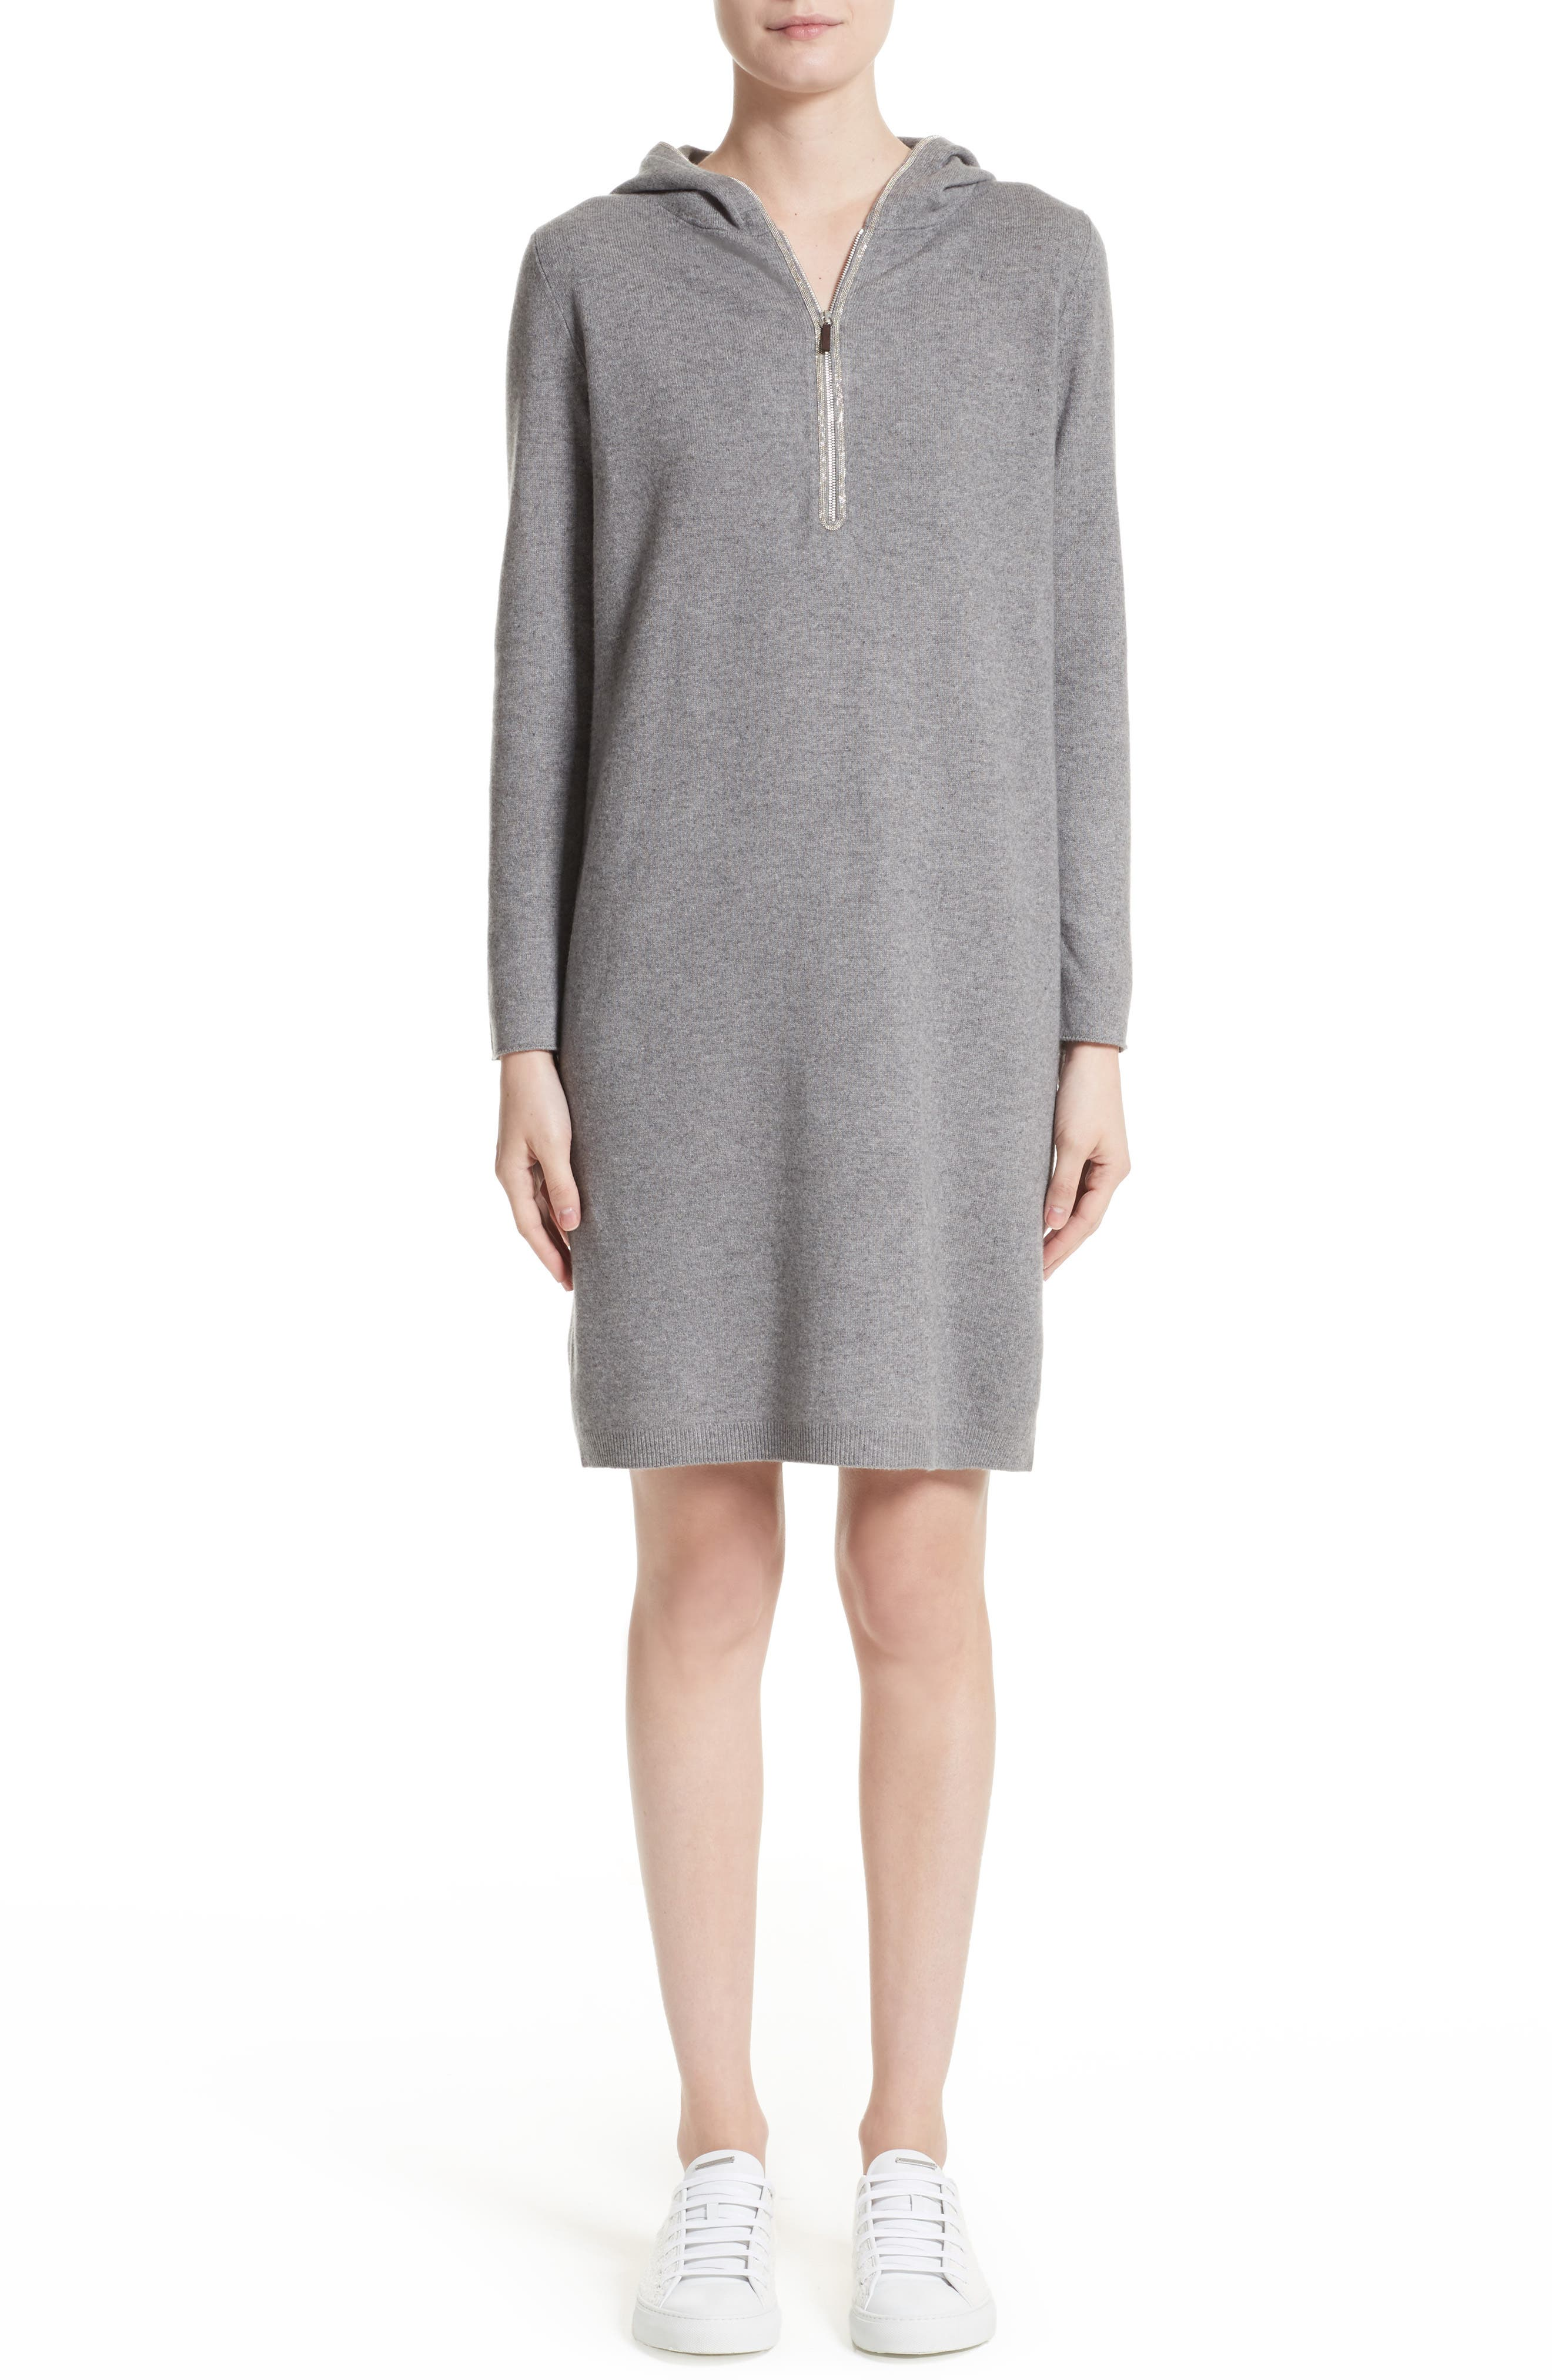 Wool, Silk & Cashmere Hooded Dress,                             Main thumbnail 1, color,                             020